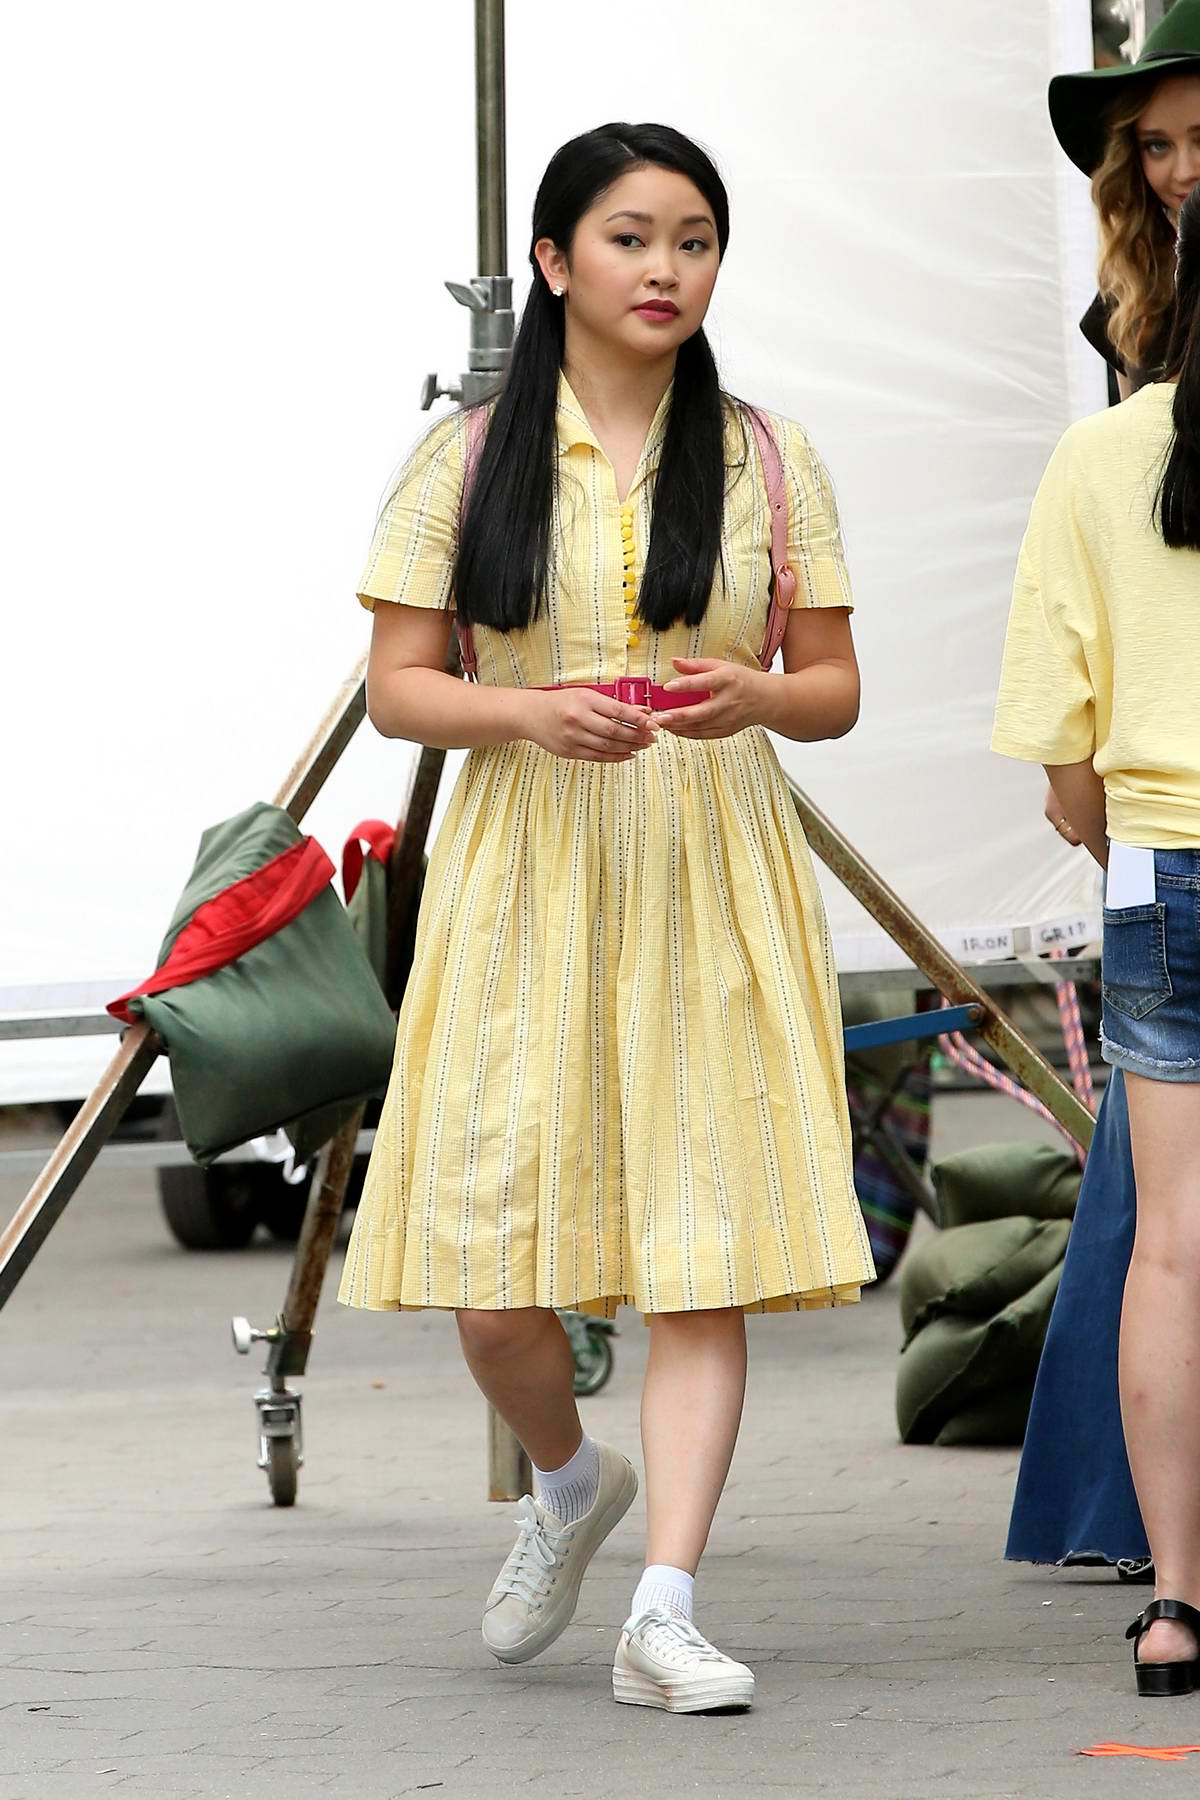 Lana Condor spotted on set of 'To All the Boys I've Loved Before' Season 3 in Washington Square Park in New York City